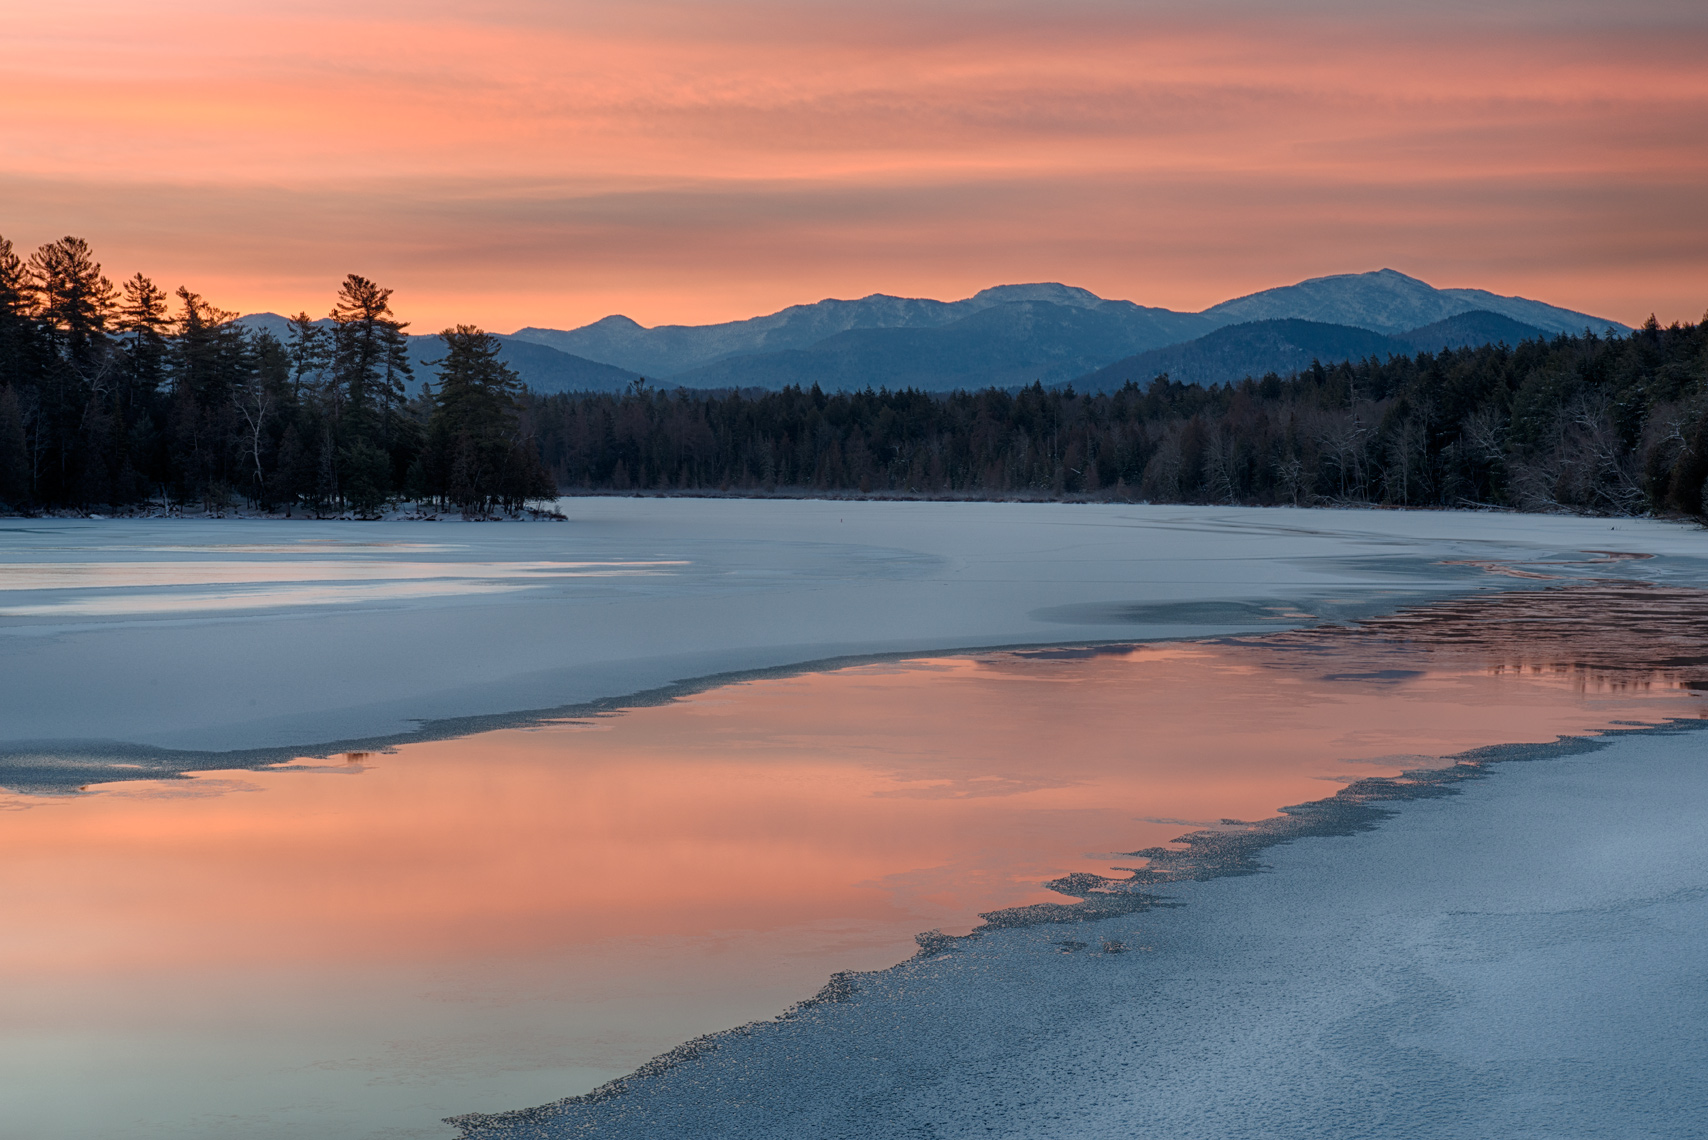 Winter Dawn in the Adirondack Mountains of New York State